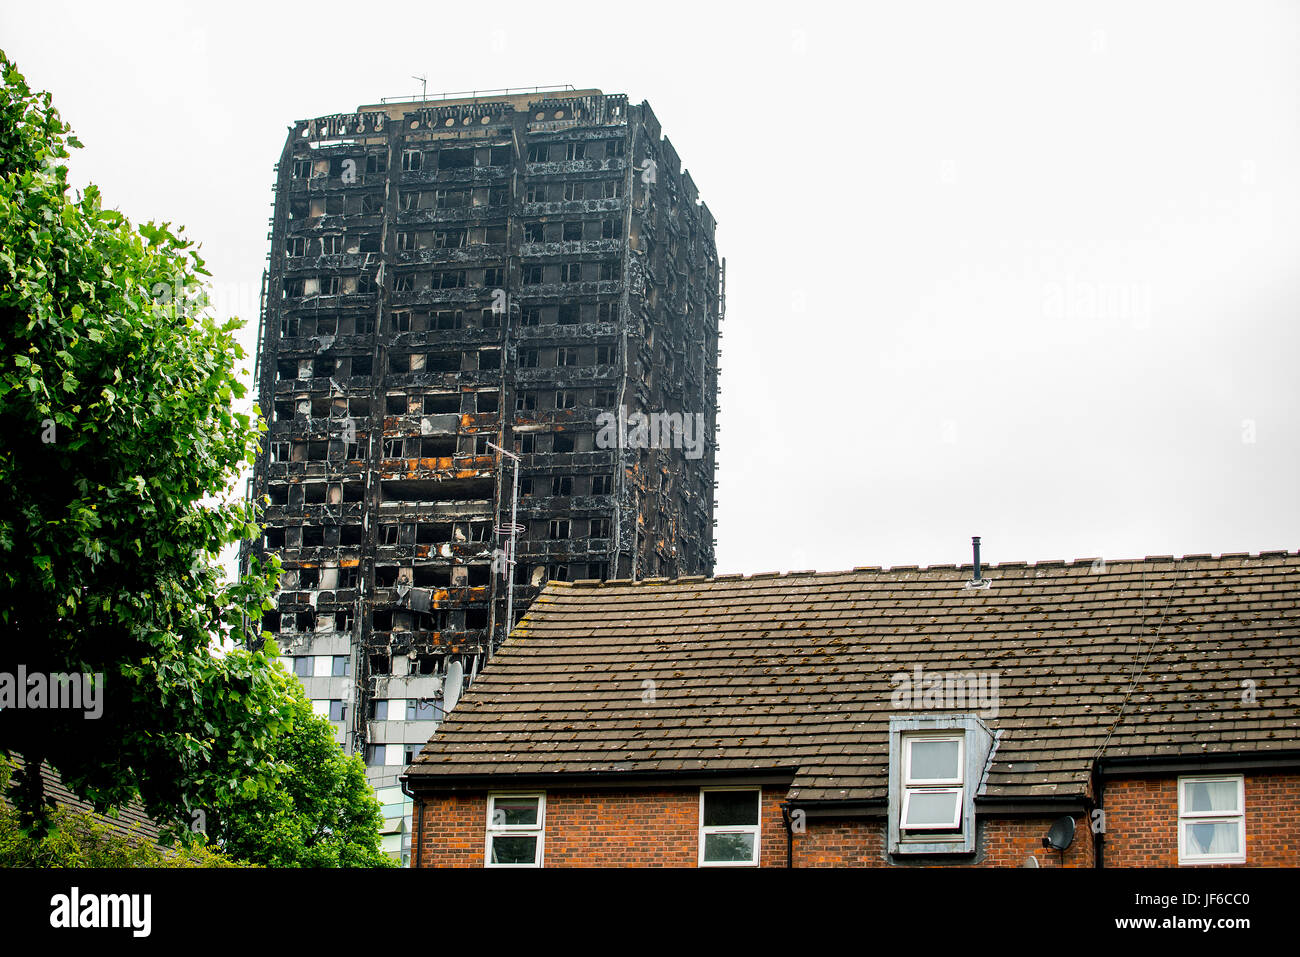 The burnt remains & devastation caused by fire, which ripped through the Grenfell Tower block leaving hundreds - Stock Image